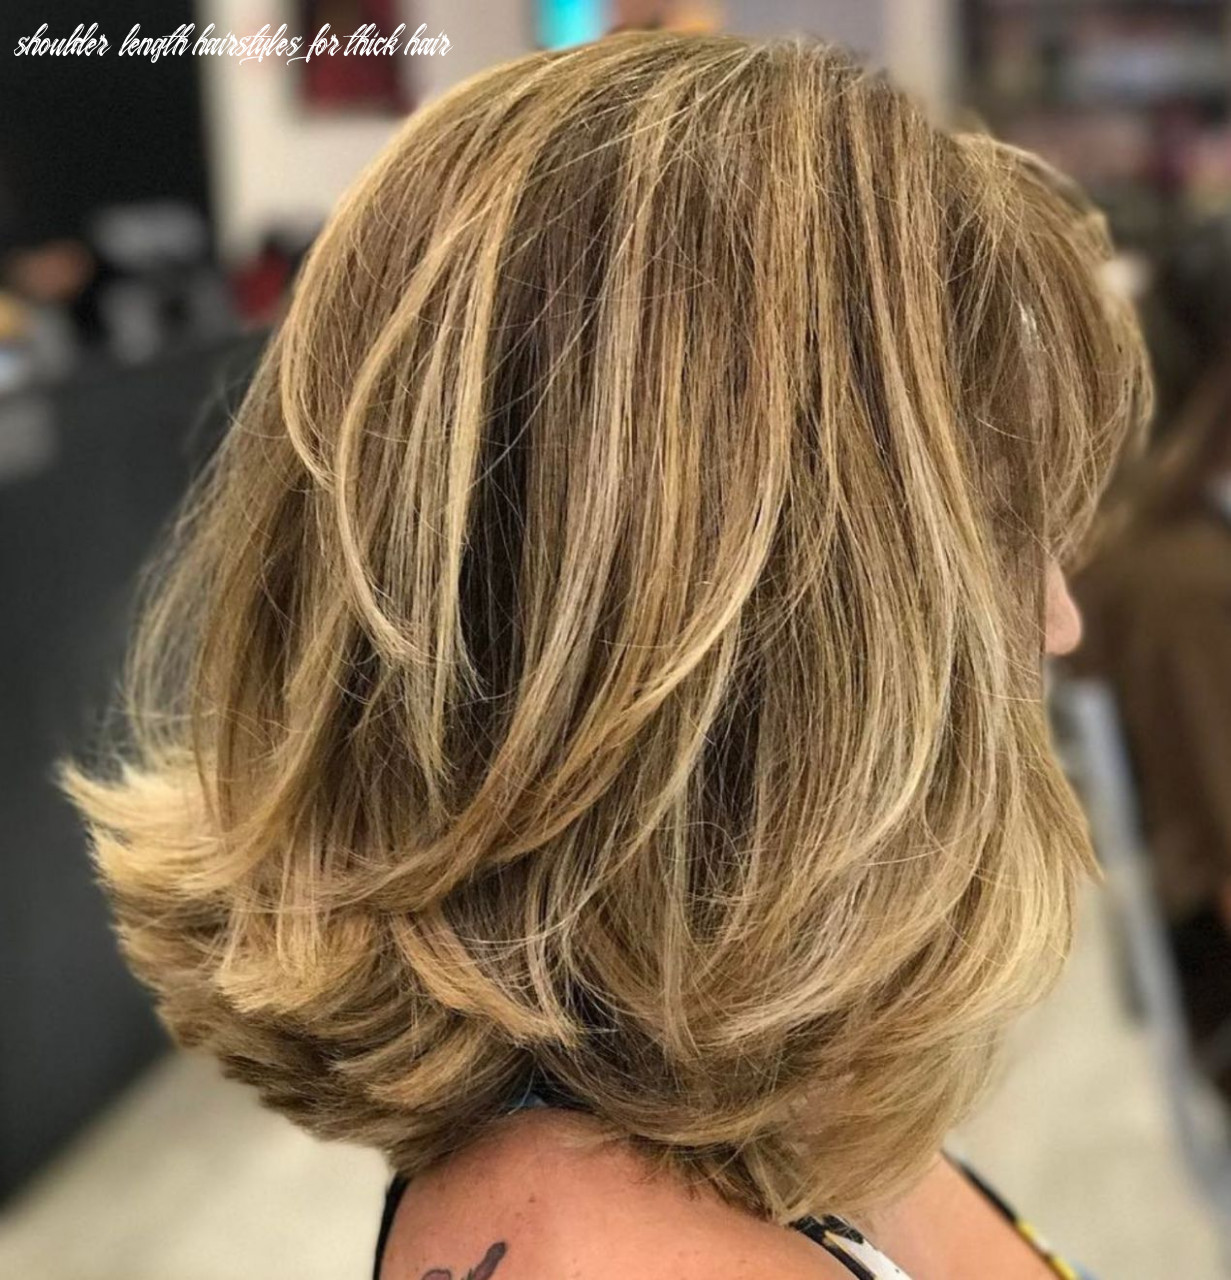 Pin on hairstyles shoulder length hairstyles for thick hair